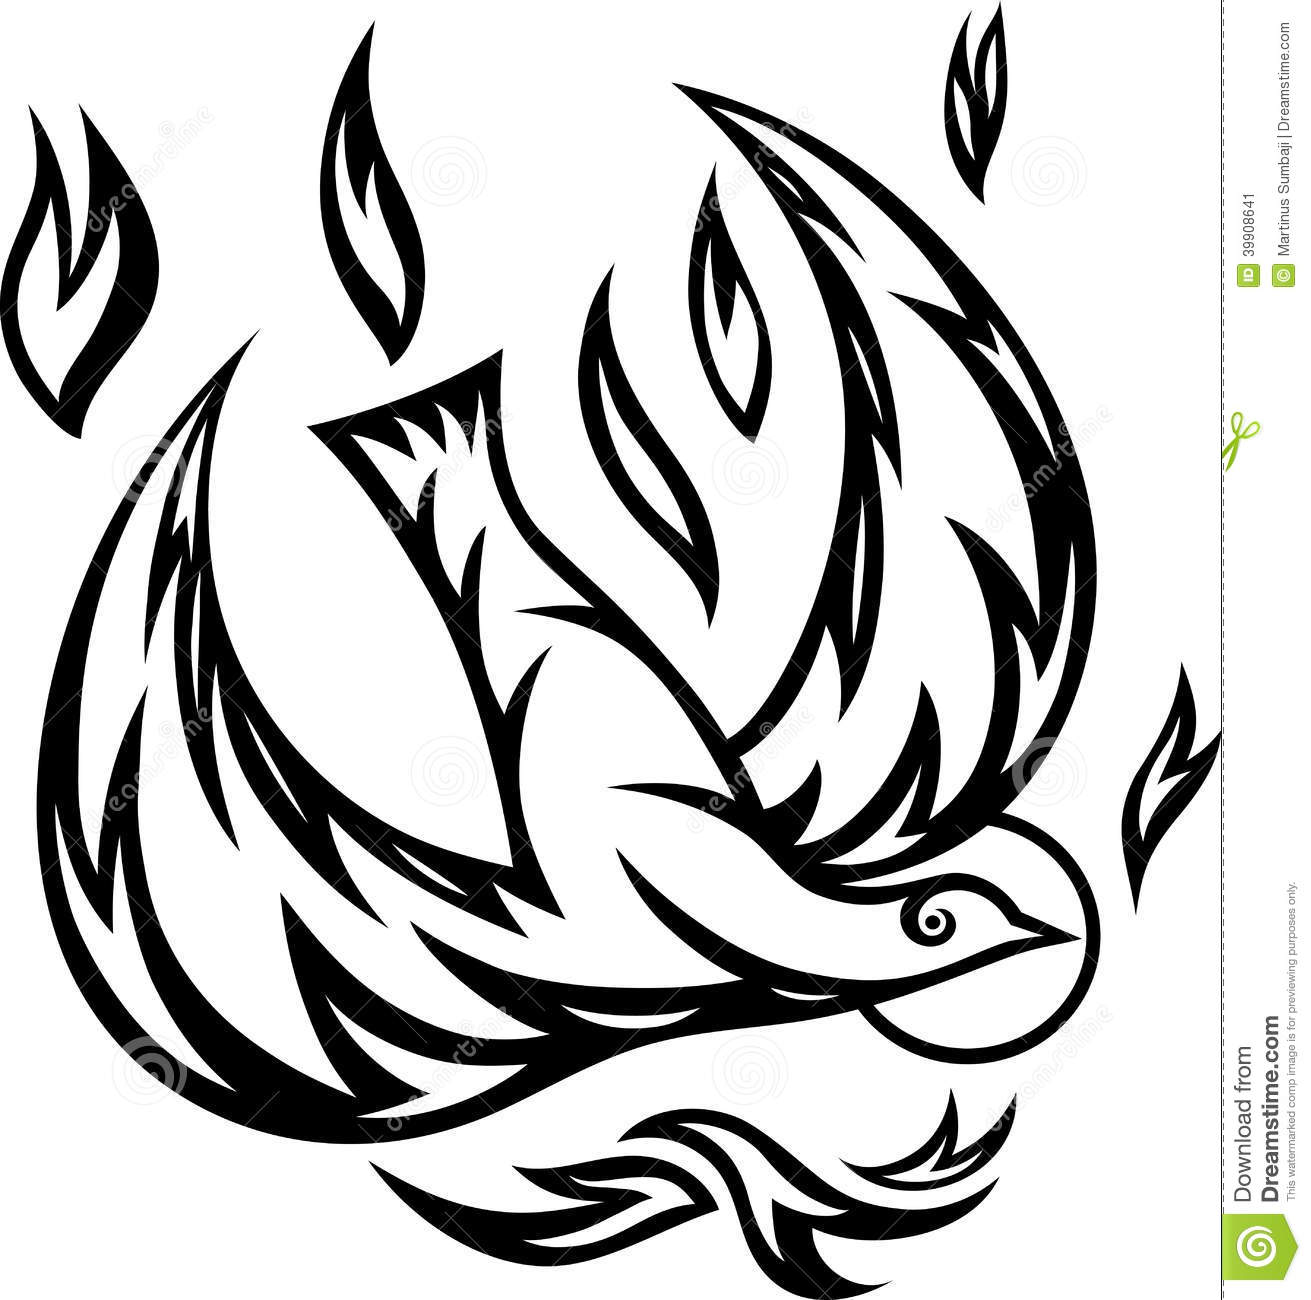 Dove Holy Spirit Ornate Stock Vector Illustration Of Symbol 39908641